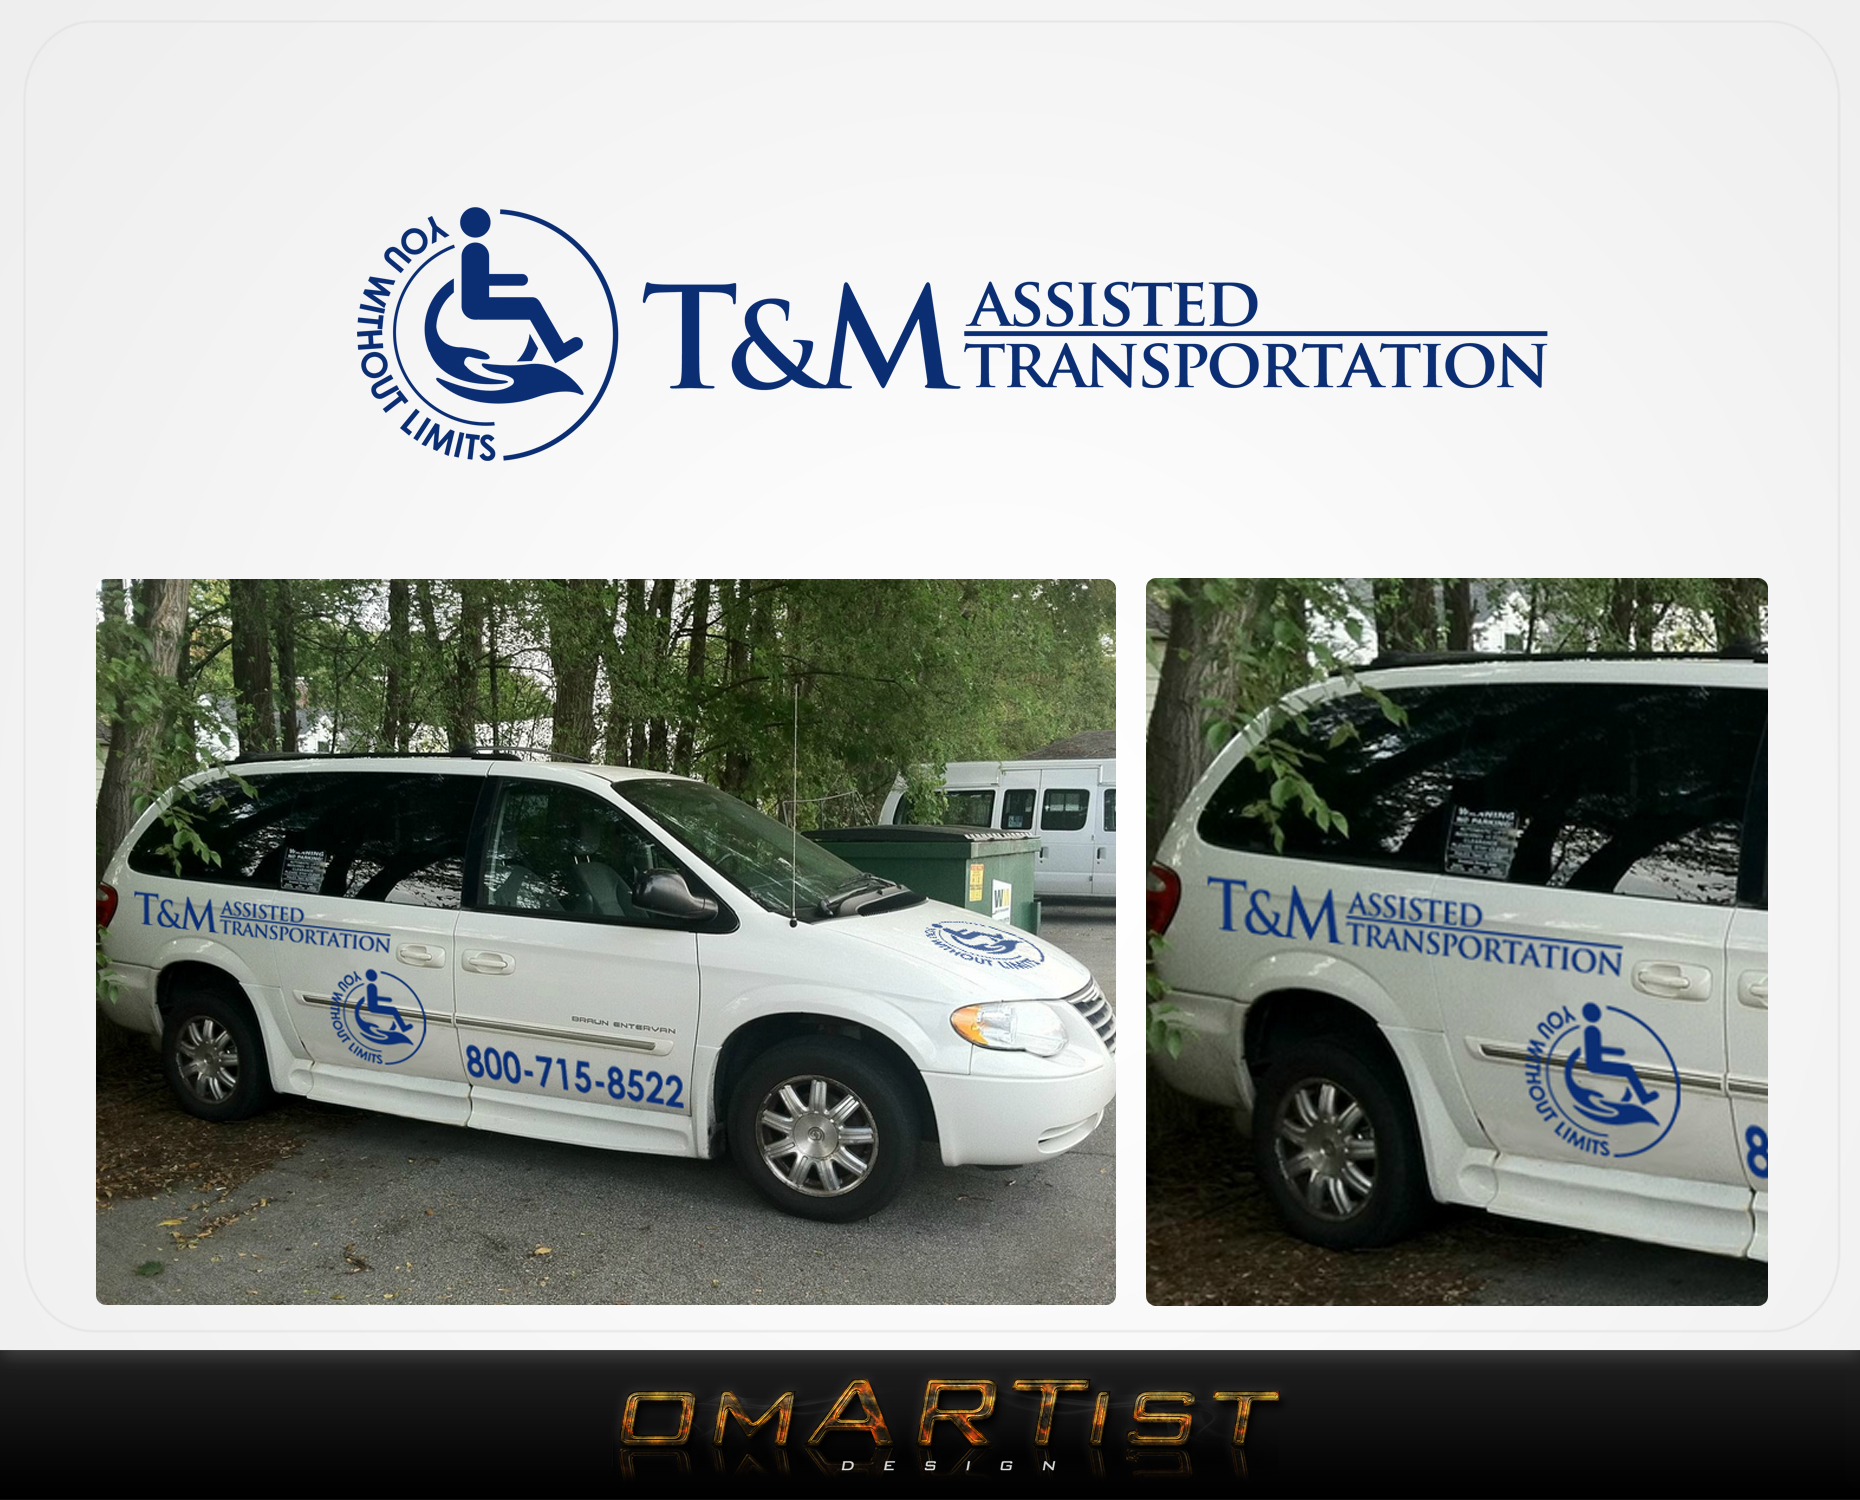 Logo Design by omARTist - Entry No. 60 in the Logo Design Contest Artistic Logo Design for T & M.